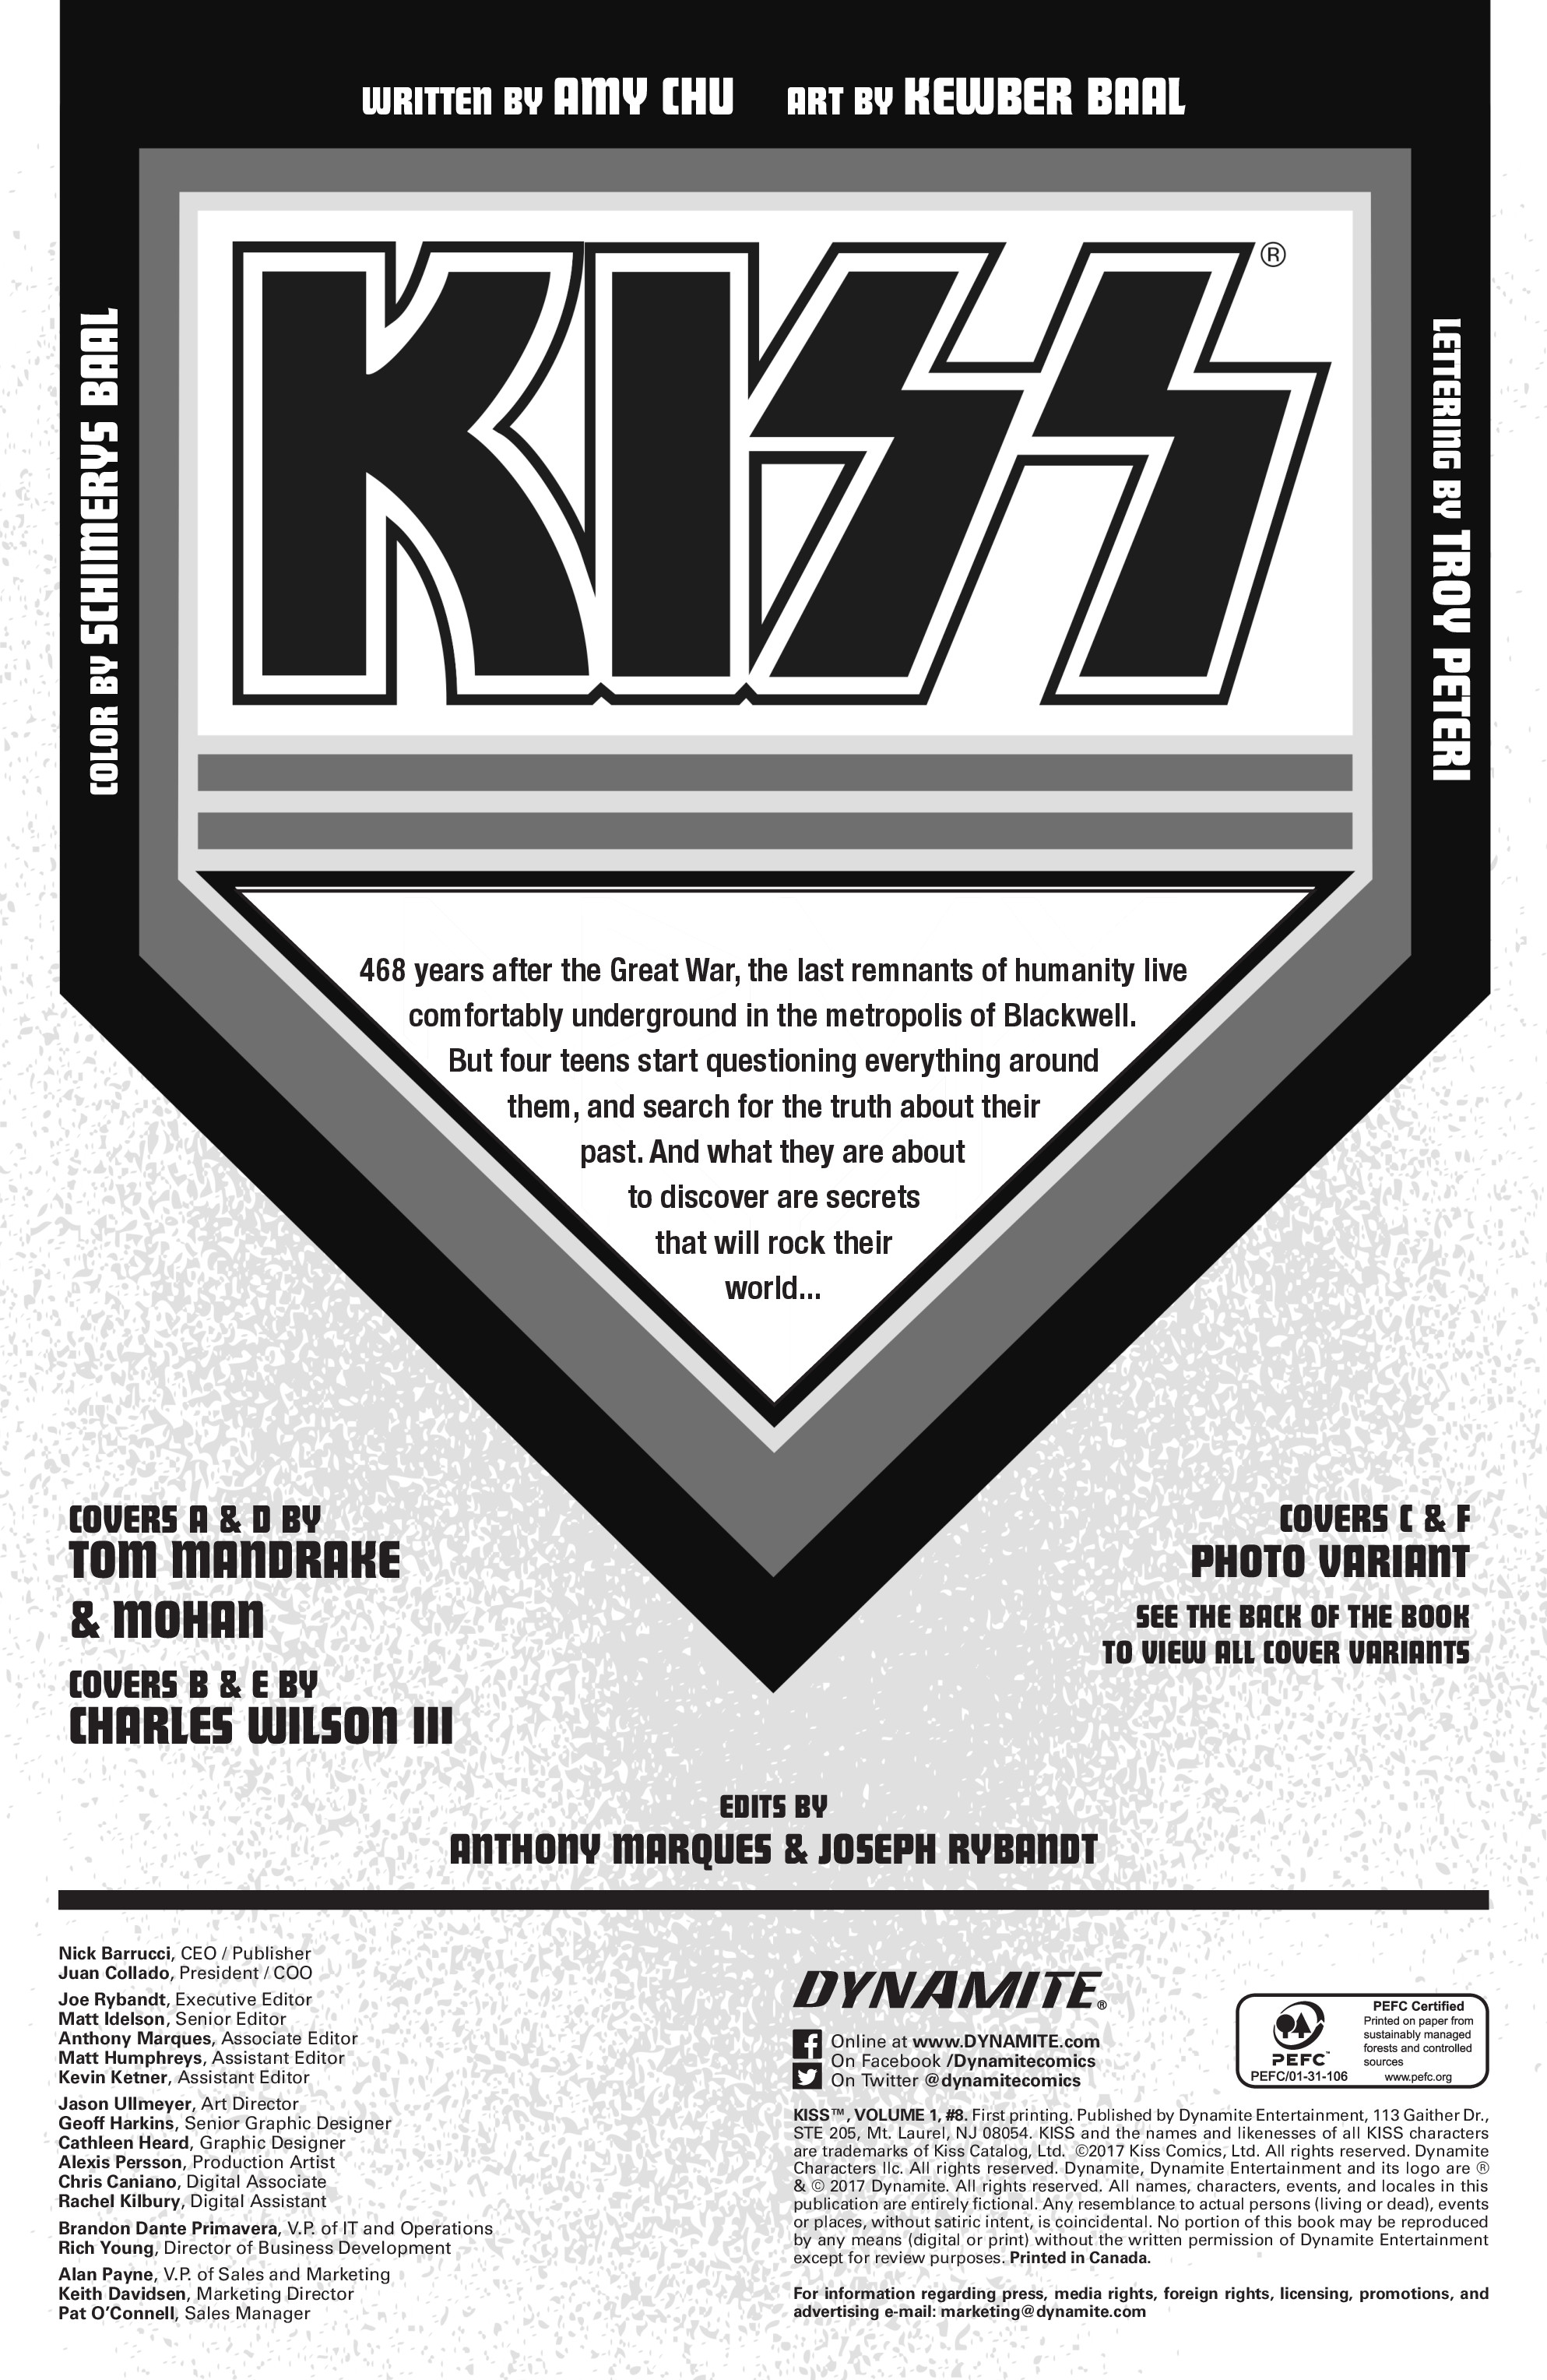 Read online KISS comic -  Issue #8 - 4